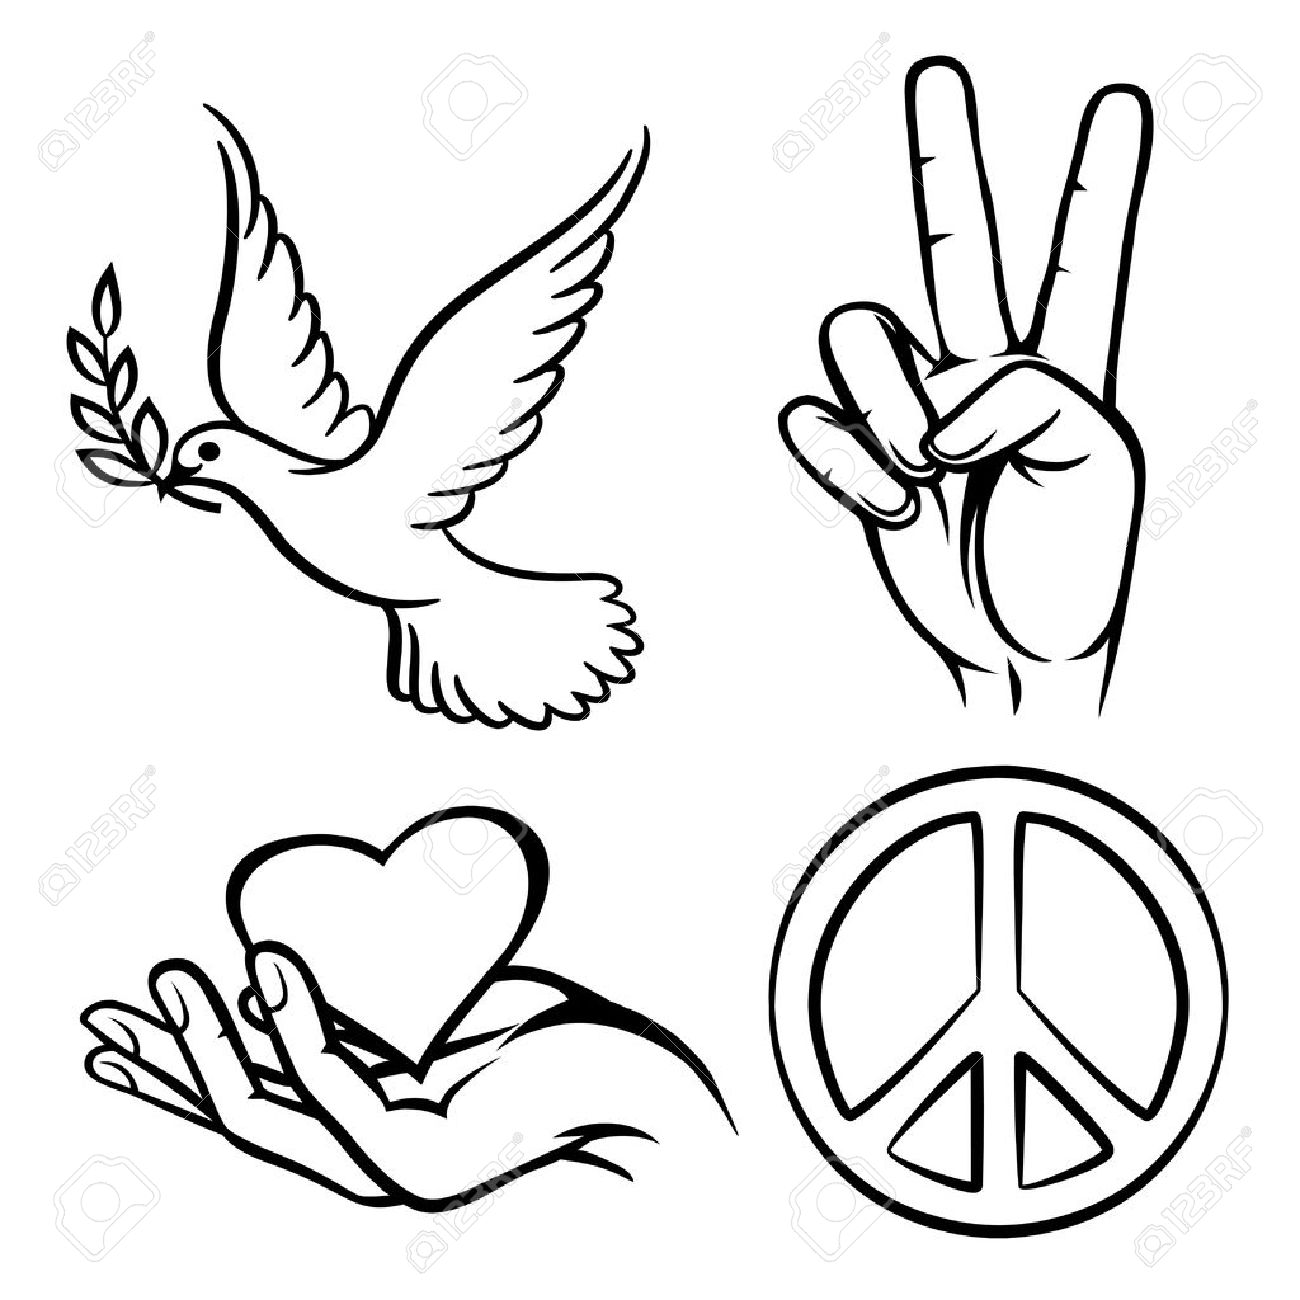 Peace Symbols Royalty Free Cliparts Vectors And Stock Illustration